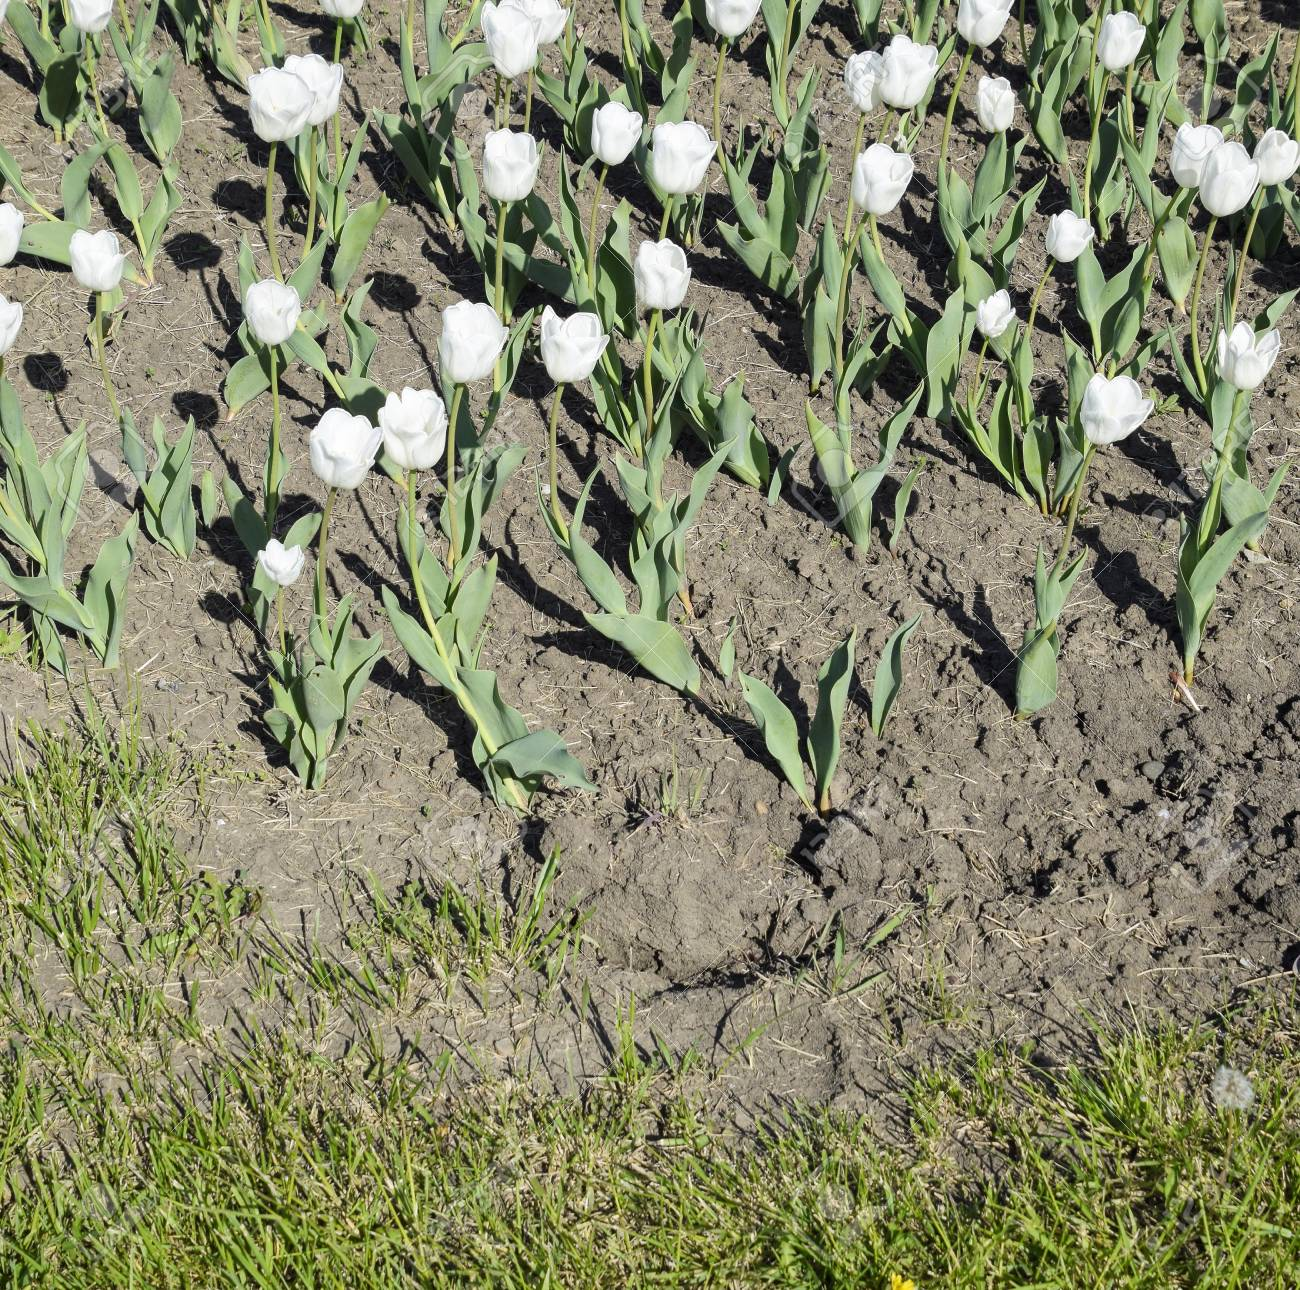 A Flower Bed With White Tulips White Tulips Bulbous Plants